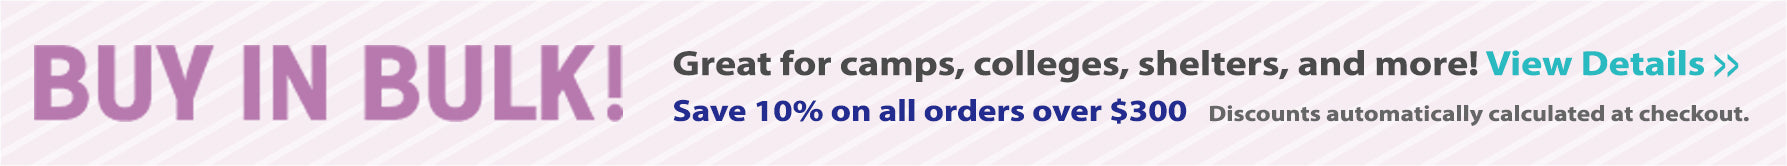 Buy in Bulk - Great for colleges, shelters and more! Save 10% on orders over $300